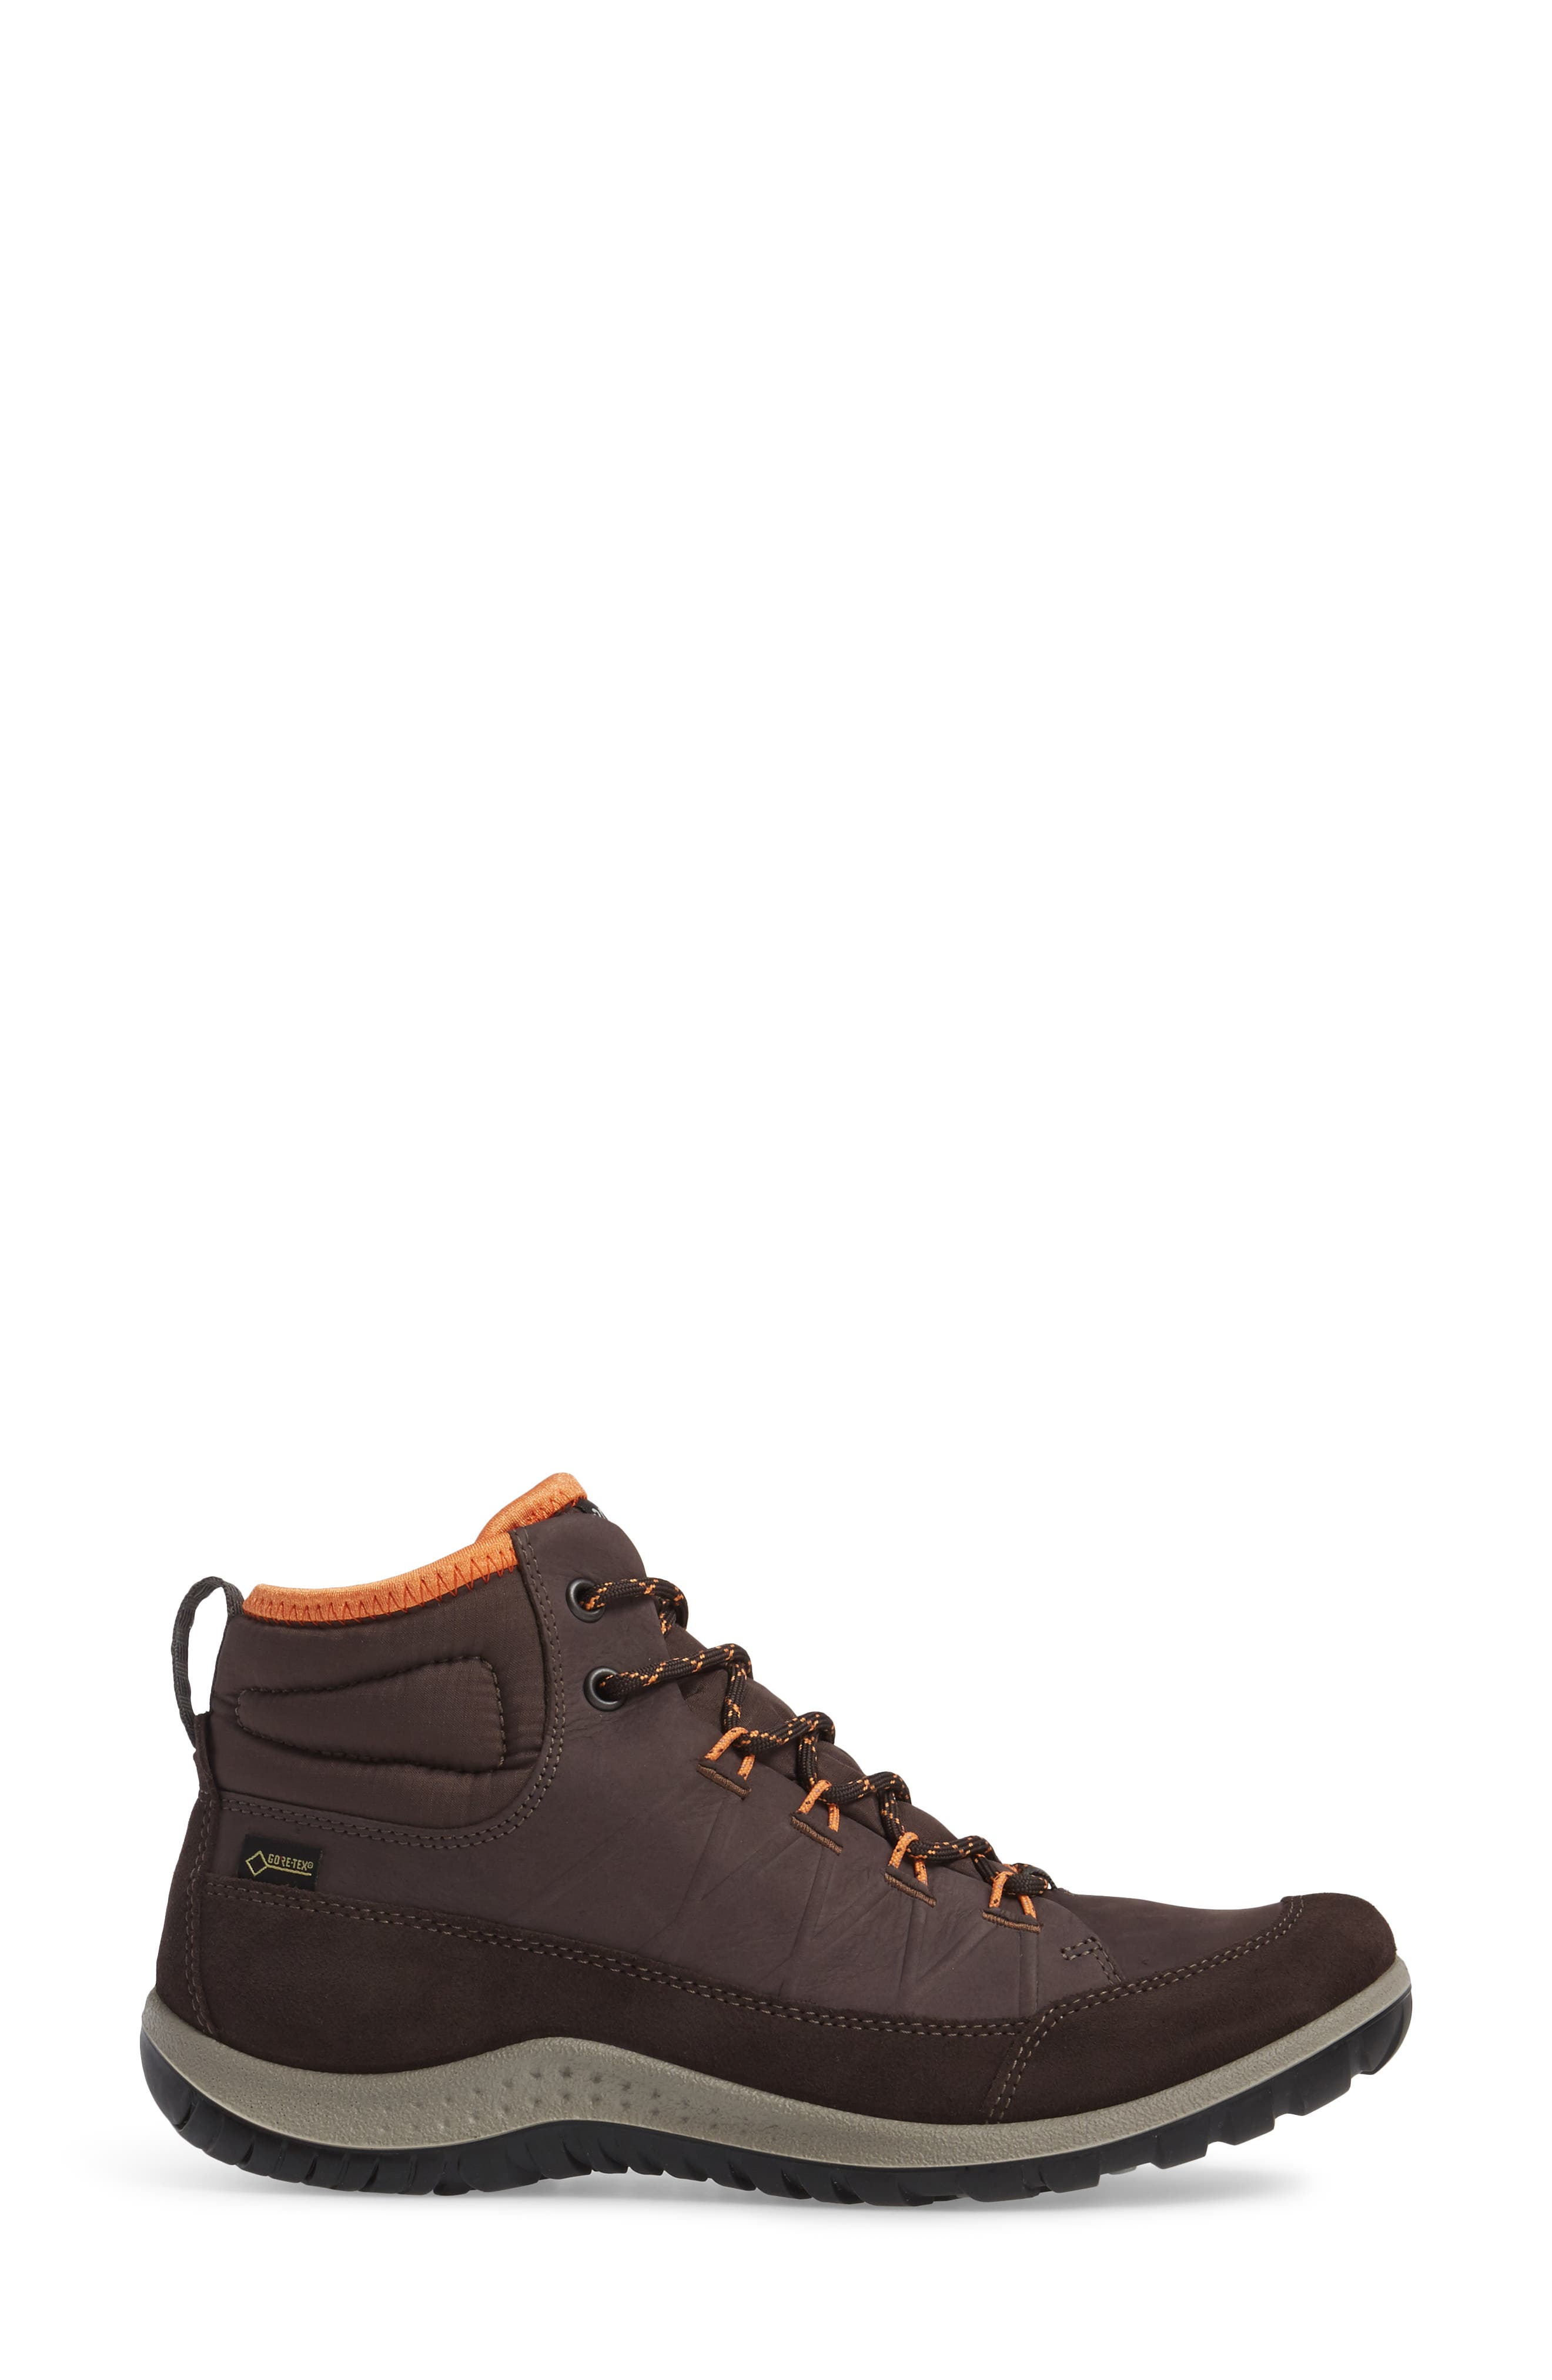 'Aspina GTX' Waterproof High Top Shoe,                             Alternate thumbnail 3, color,                             SHALE LEATHER